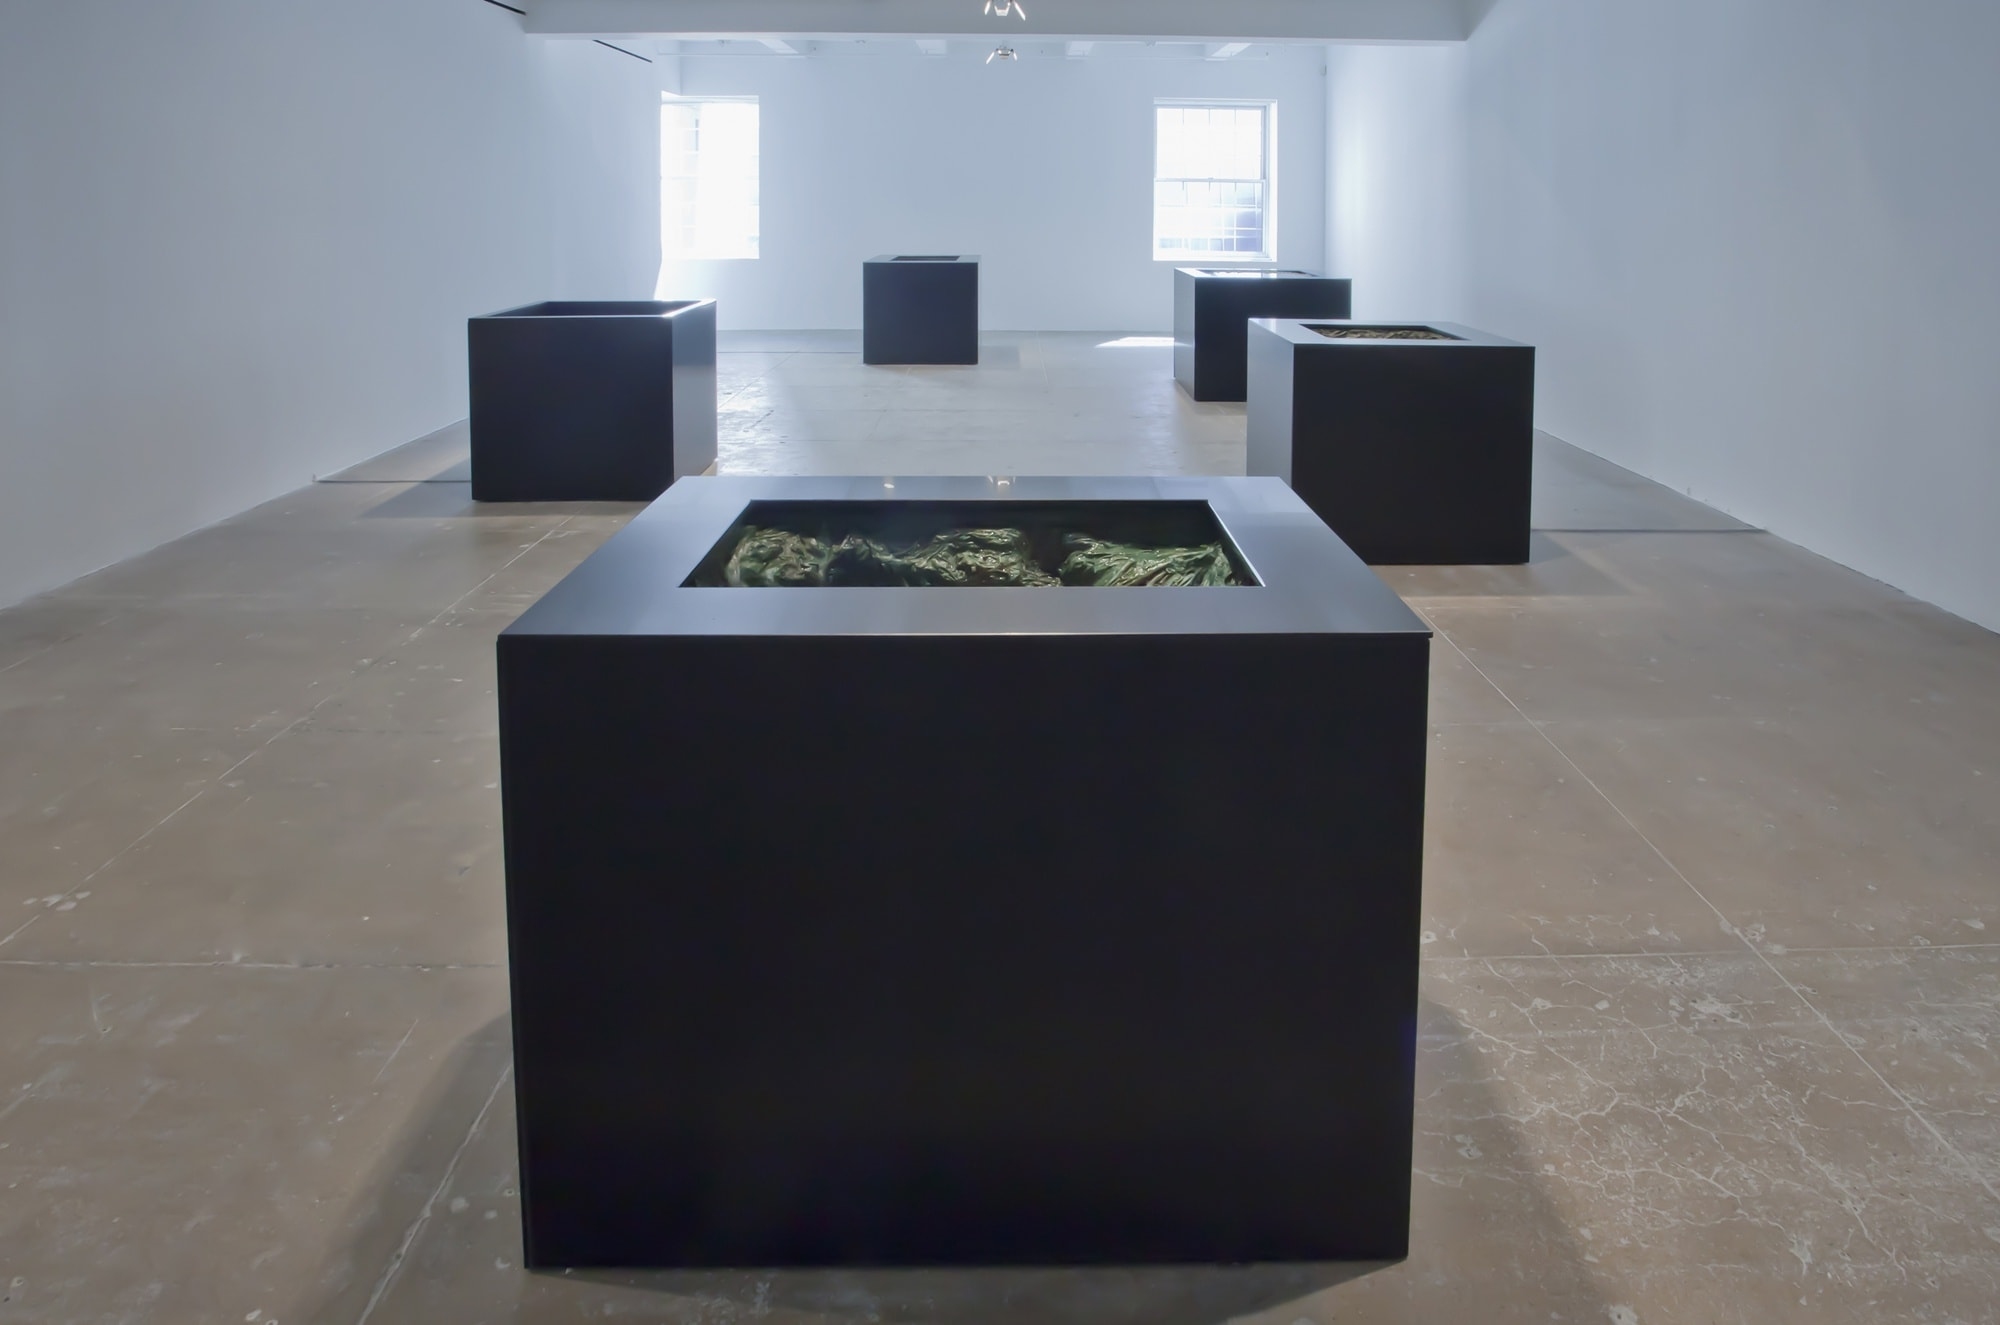 Five large black metal boxes sit on a beige floor in a large white space.